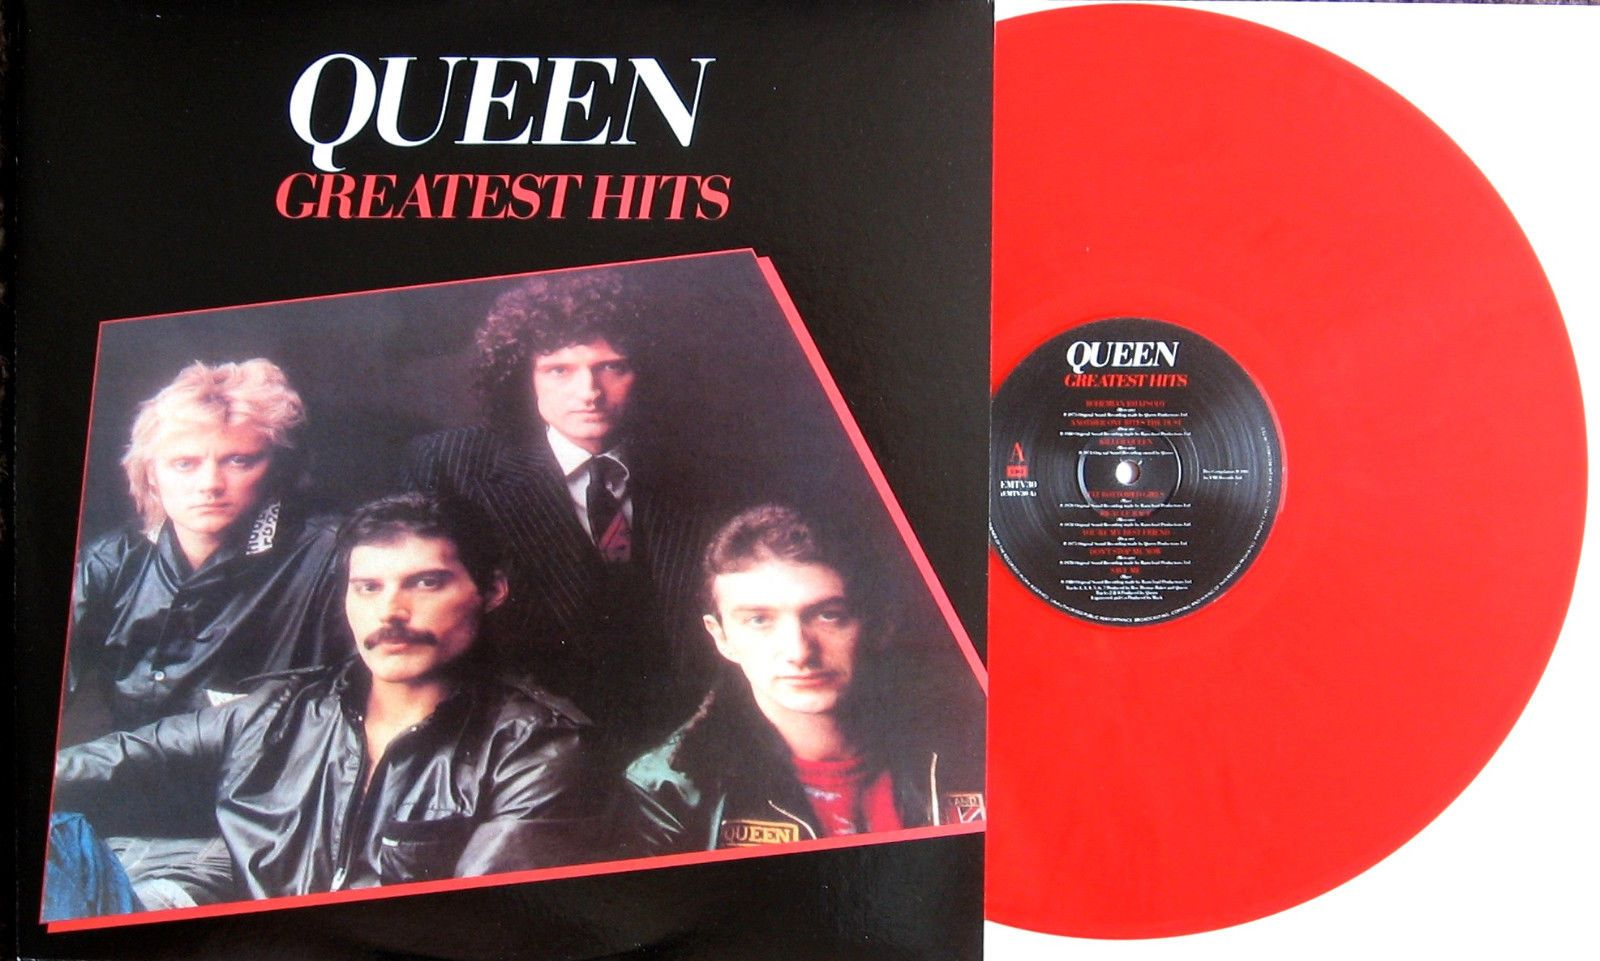 Queen Greatest Hits Rare Bright Red Color Vinyl Lp Uk Import Brand New Vinyl Red Color Color